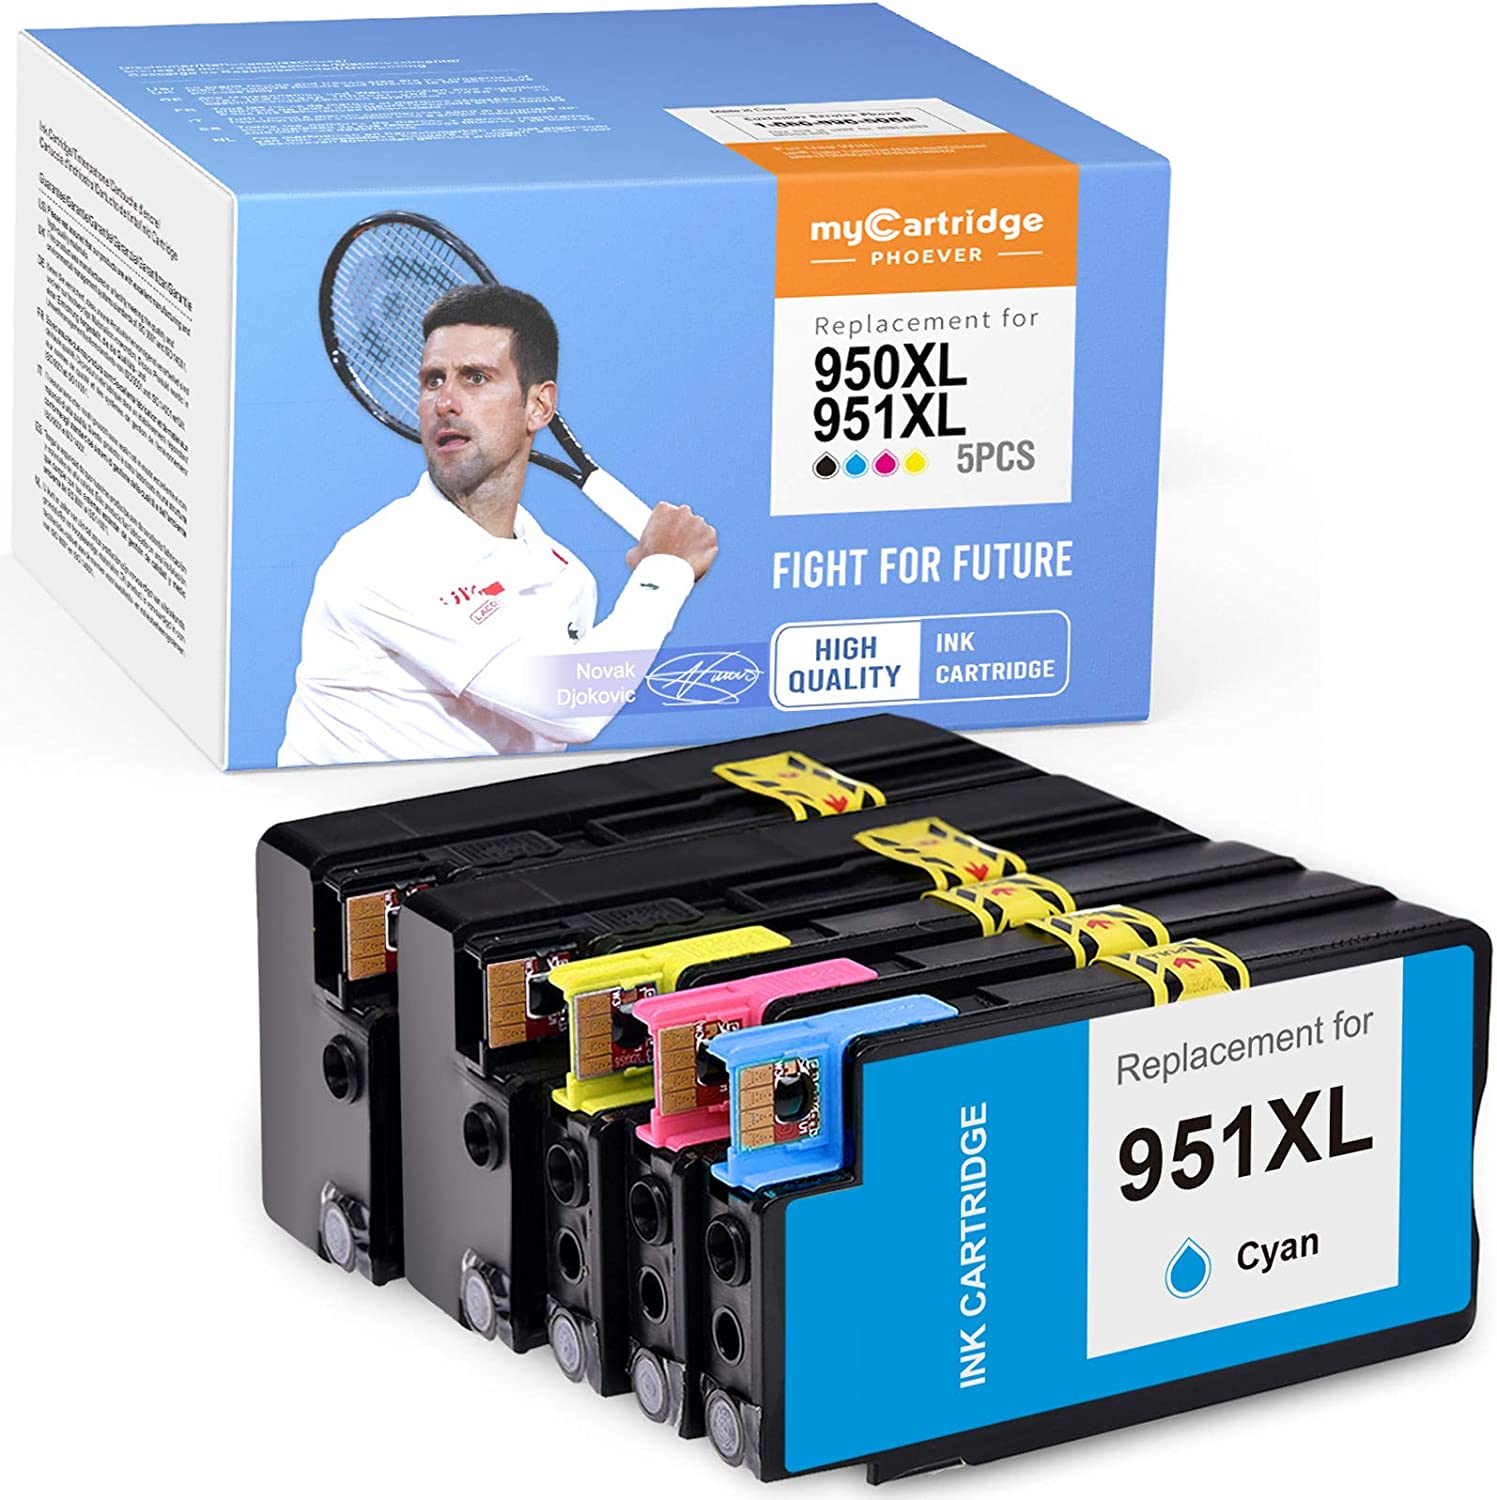 myCartridge PHOEVER Compatible Ink Cartridge Replacement for HP 950XL 951XL 950 XL 951 XL Ink for Officejet Pro 8600 8100 8625 8610 8630 8615 8620 8640 High Yield (Black Cyan Magenta Yellow, 5-Pack)